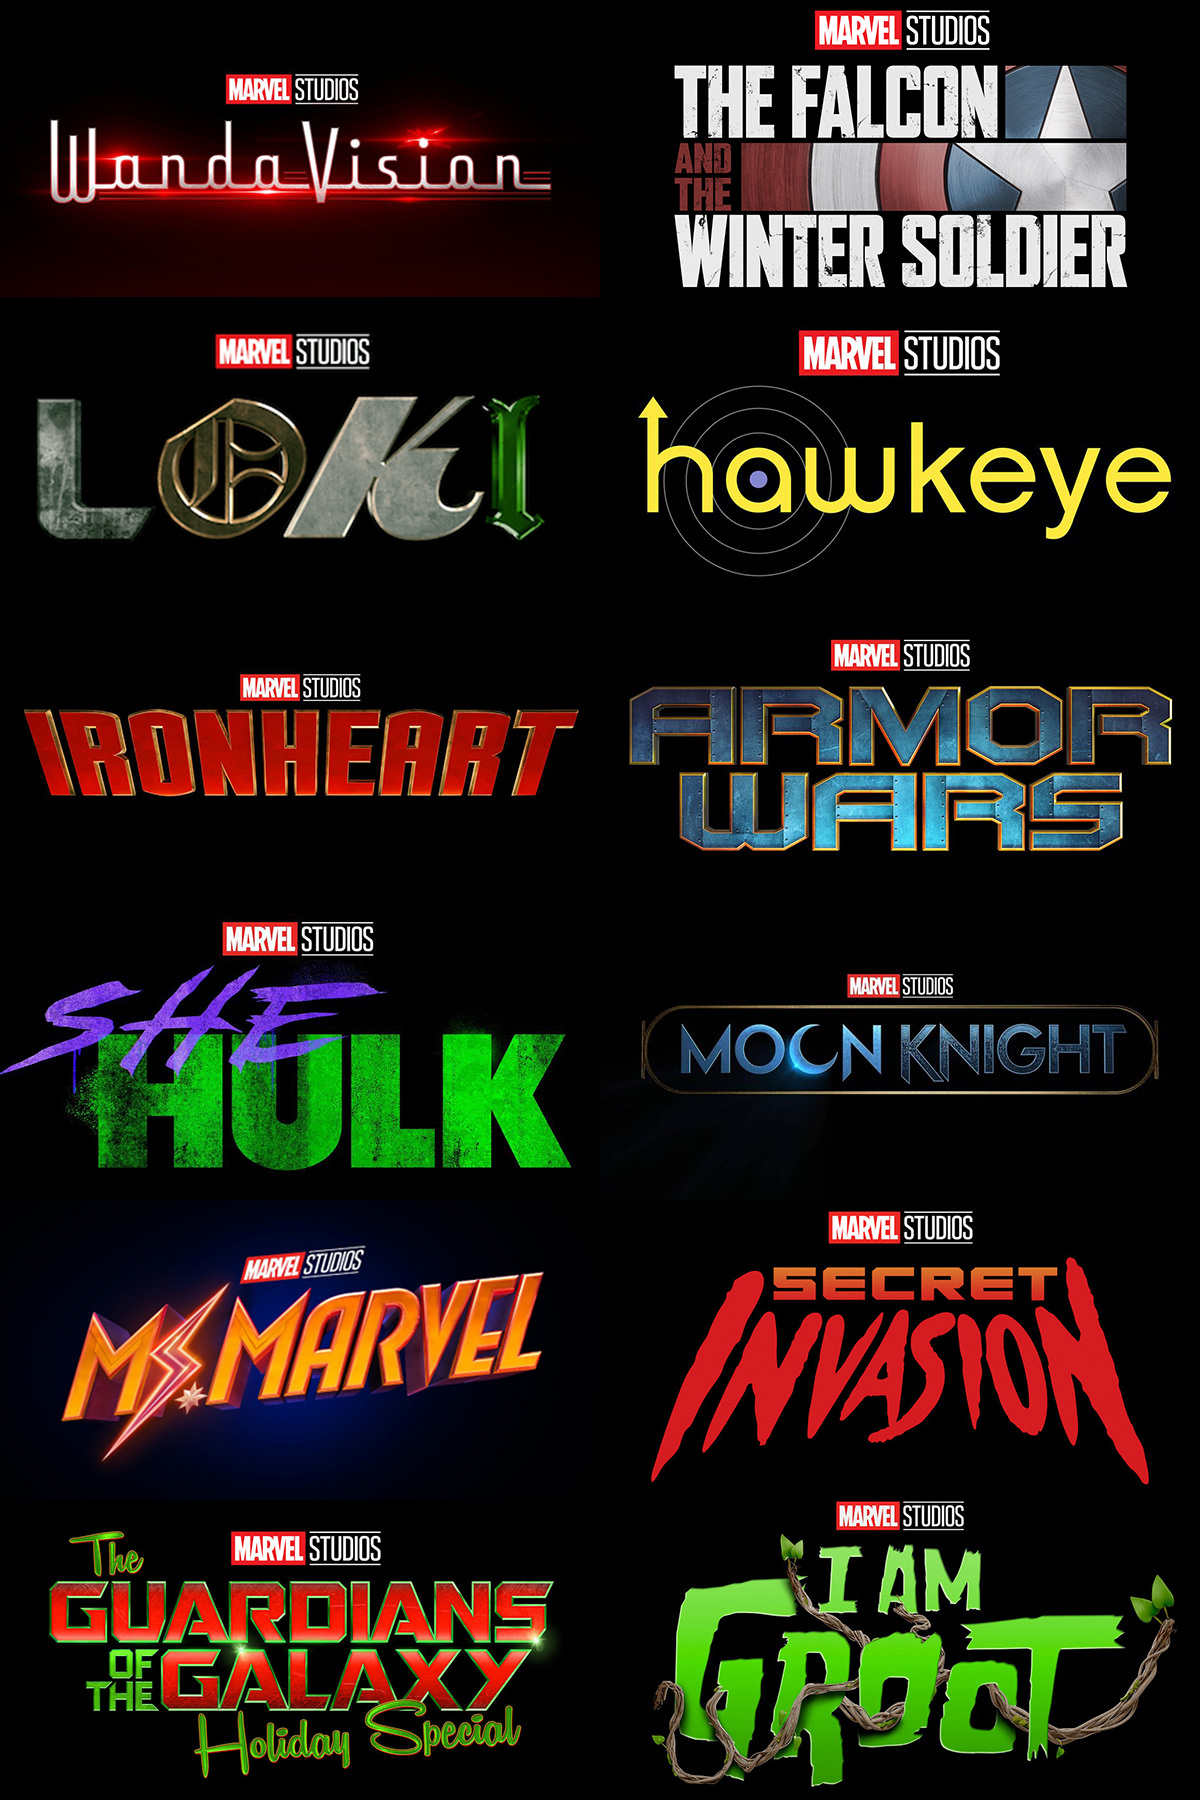 Marvel Disney+ Series Posters